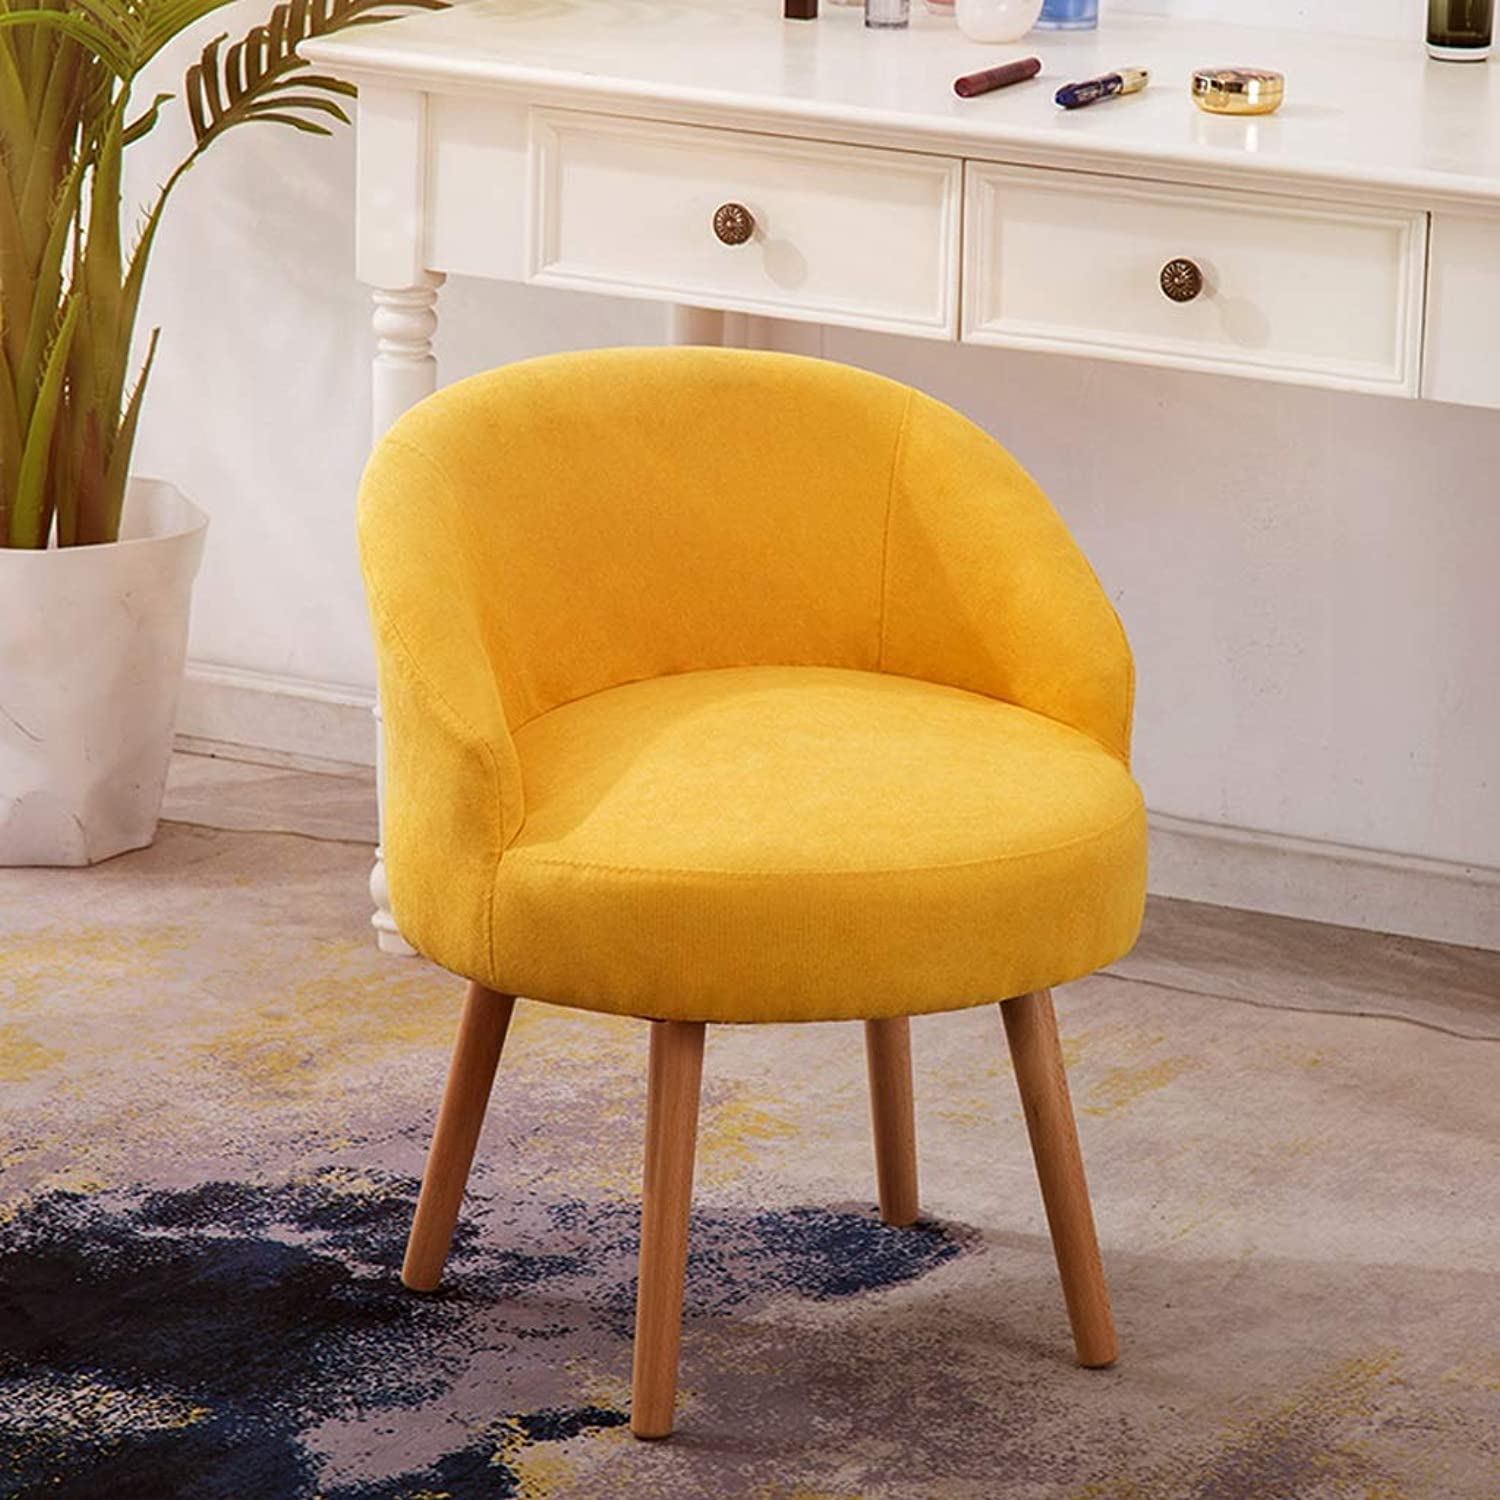 YJWOZ Yellow Green bluee Pink Fabric Chair Restaurant Cafe Multifunctional Sofa Chair Sitting Height 45cm7 color Optional Chair (color   A)